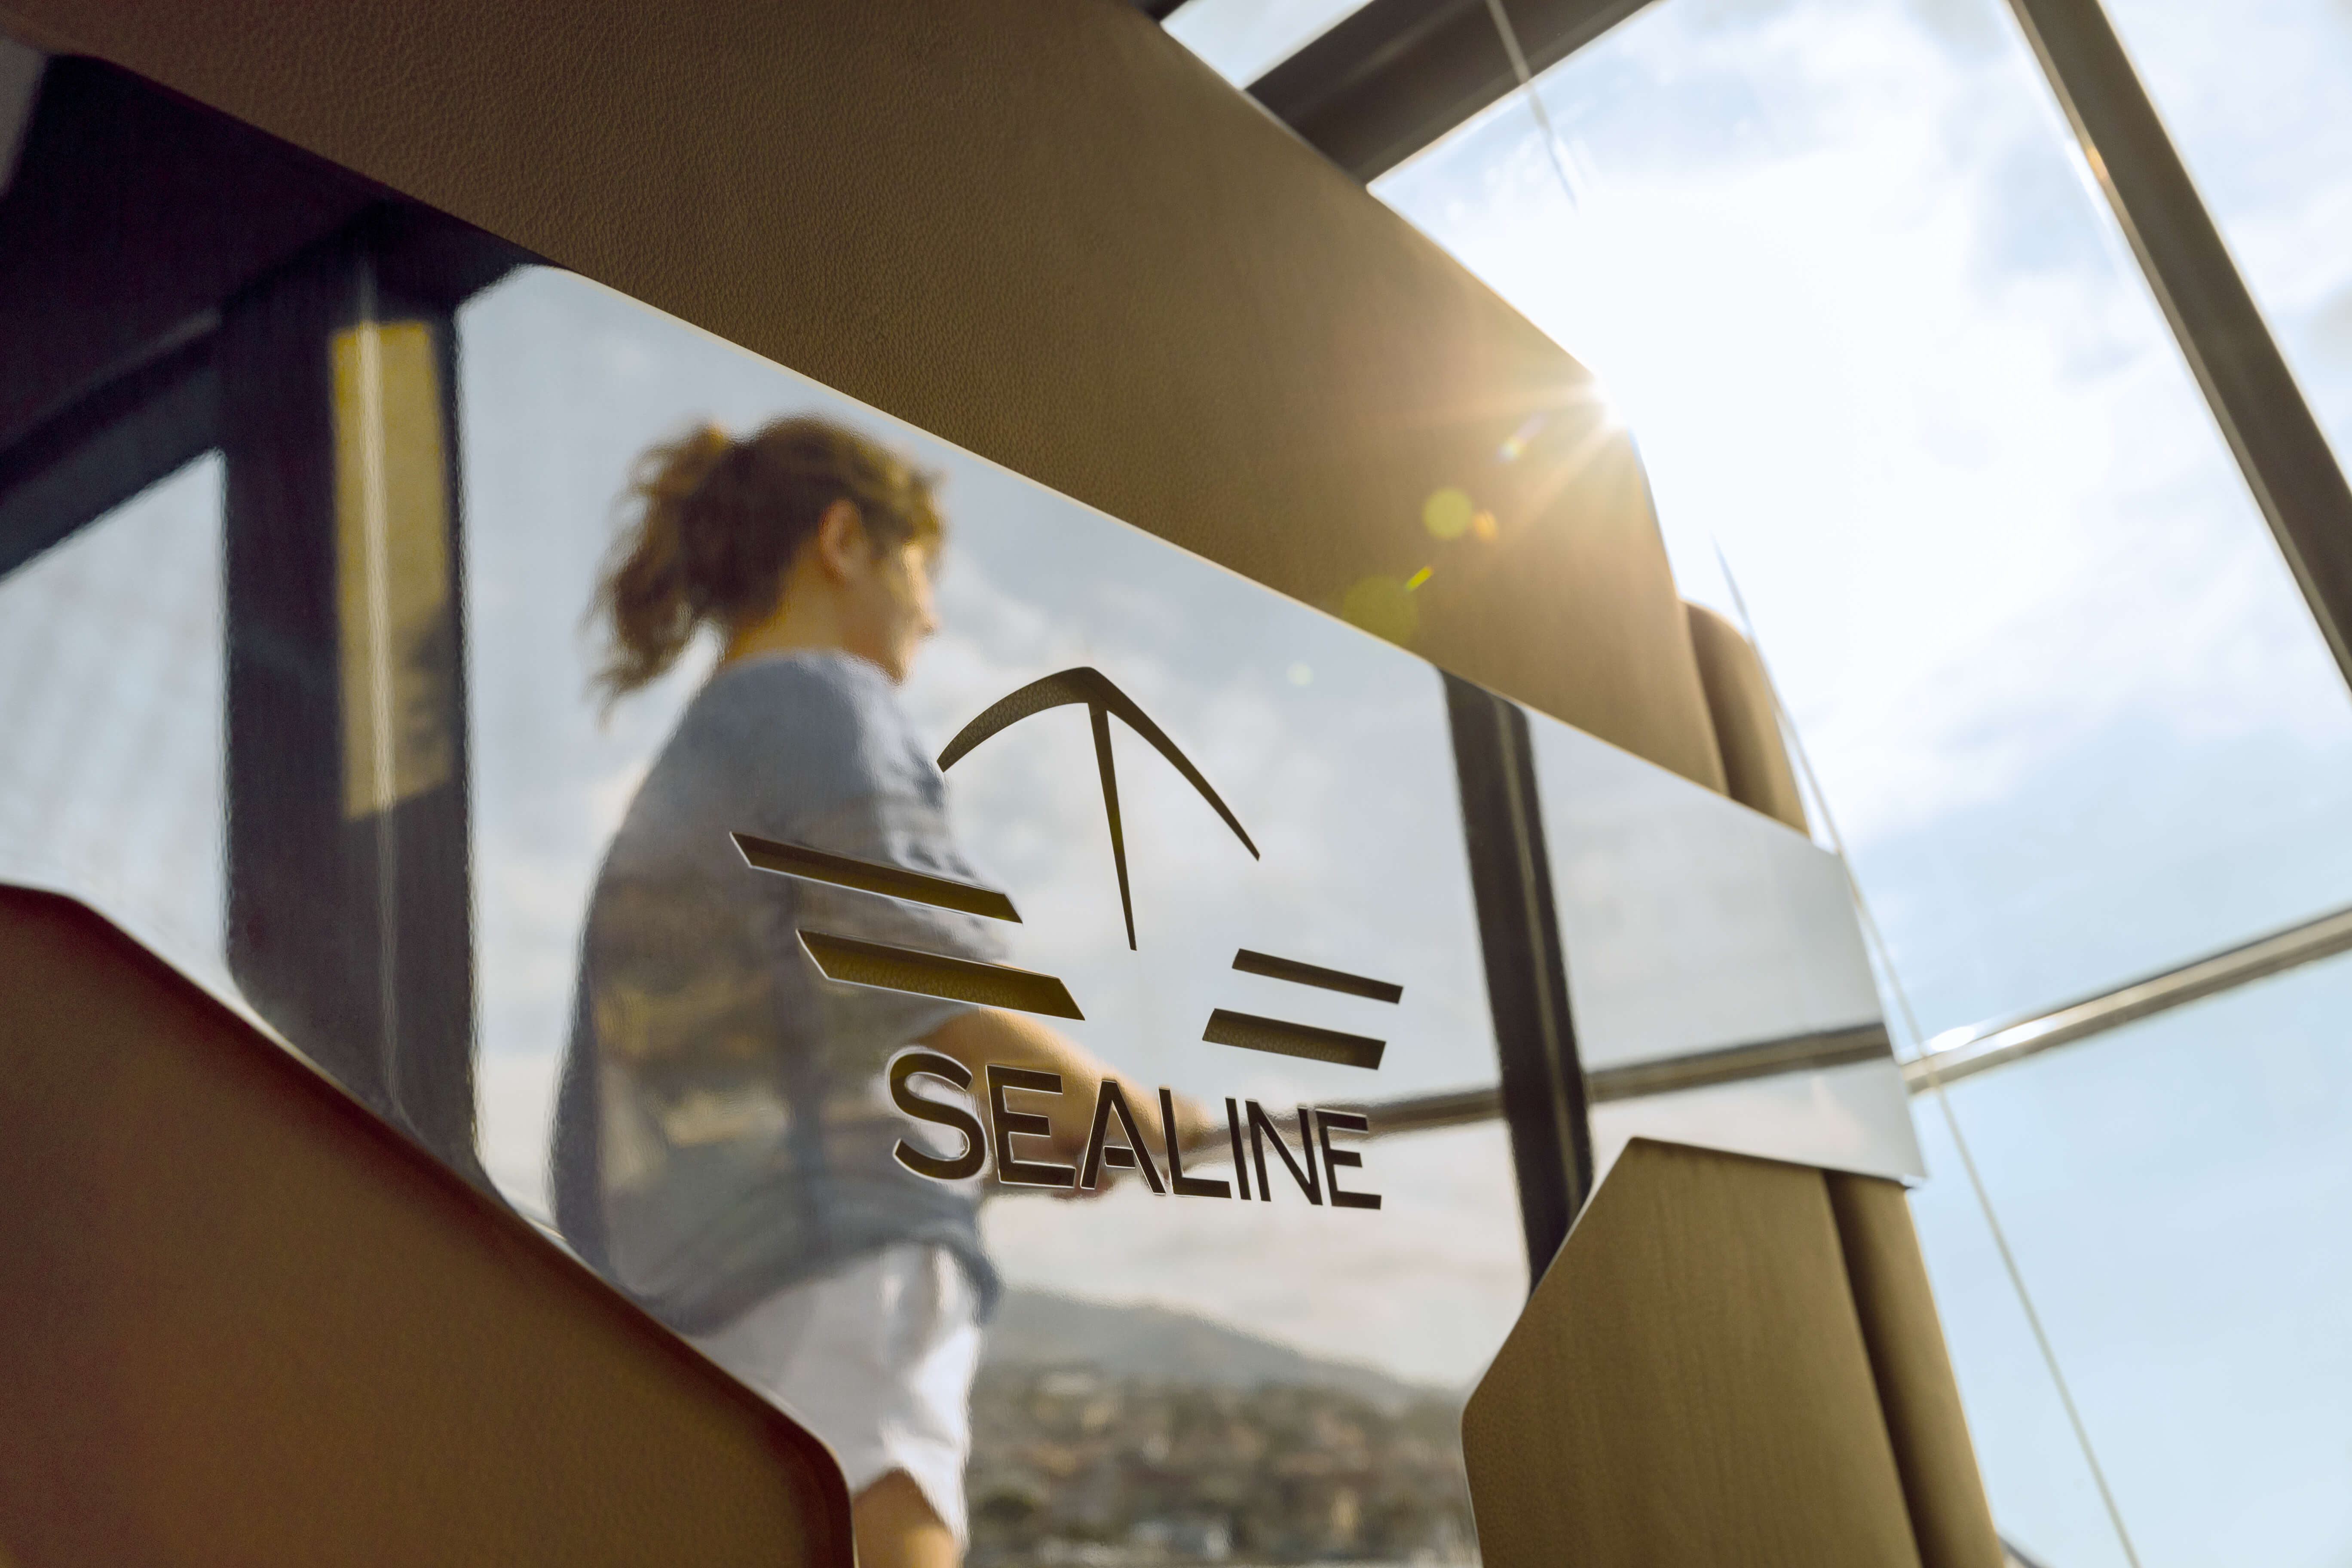 Sealine C430 | OPEN YOUR EYES TO SEA EXCELLENCE | Sealine